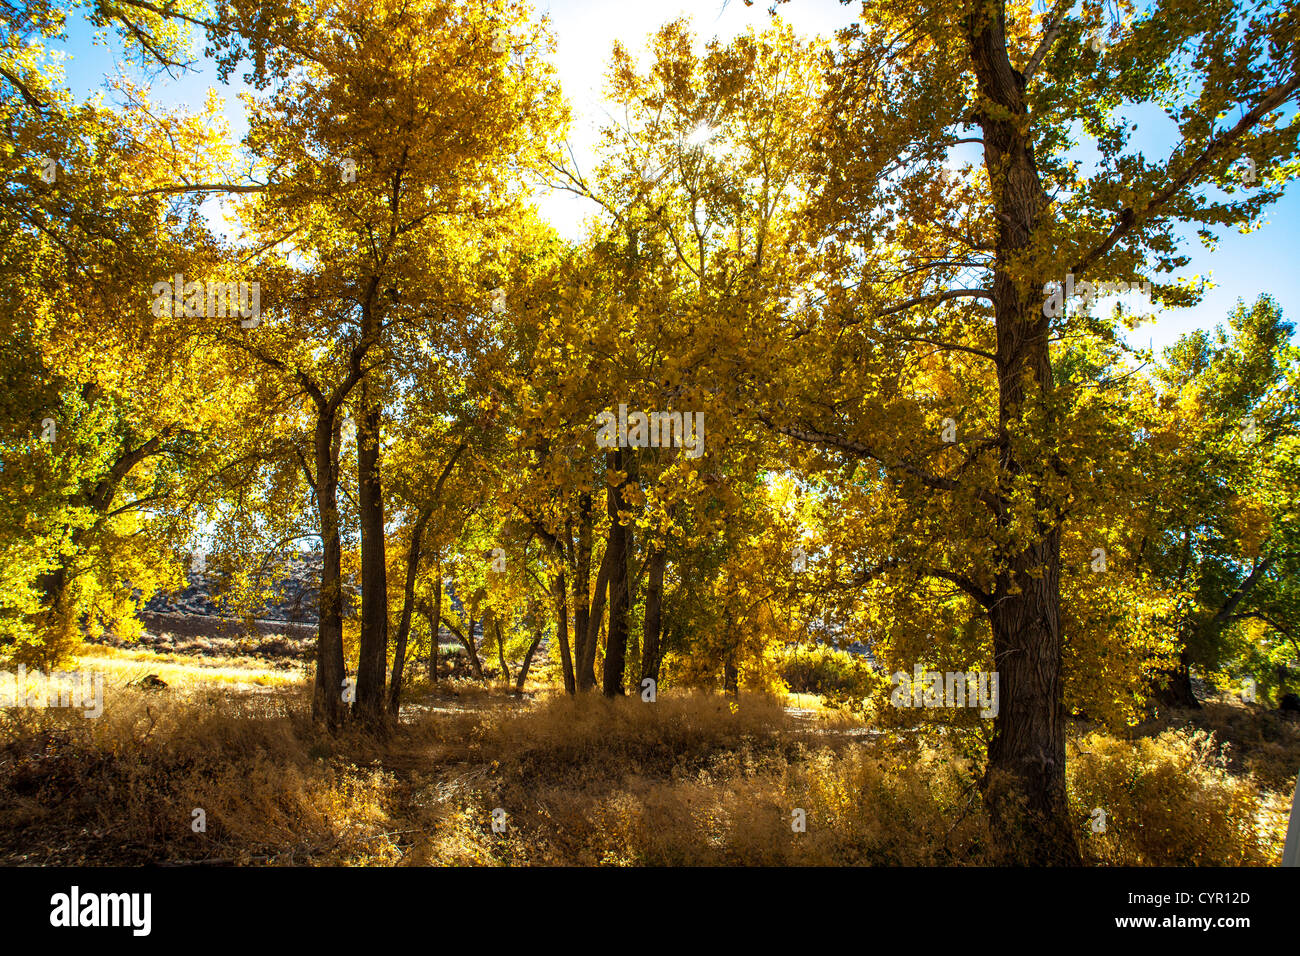 Fall Color in a grove of trees on a sunny day in Northern Nevada in the fall of 2012 along the Truckee river - Stock Image